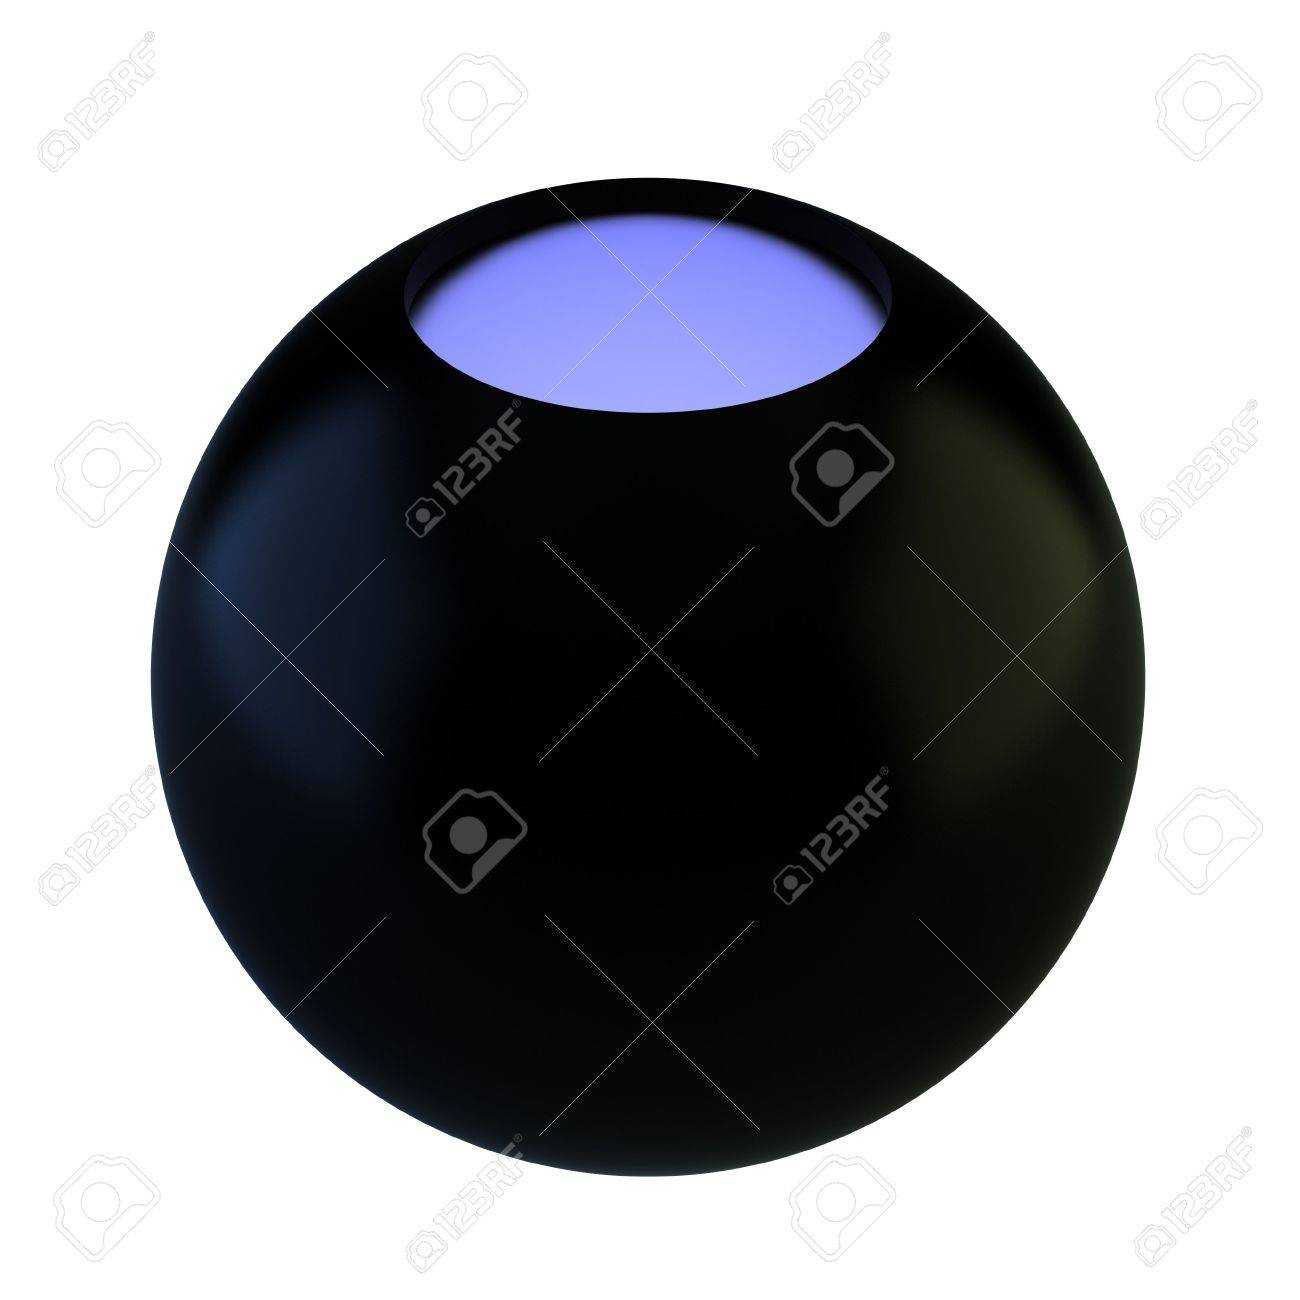 Render of magic 8 ball on white background Stock Photo - 7696534